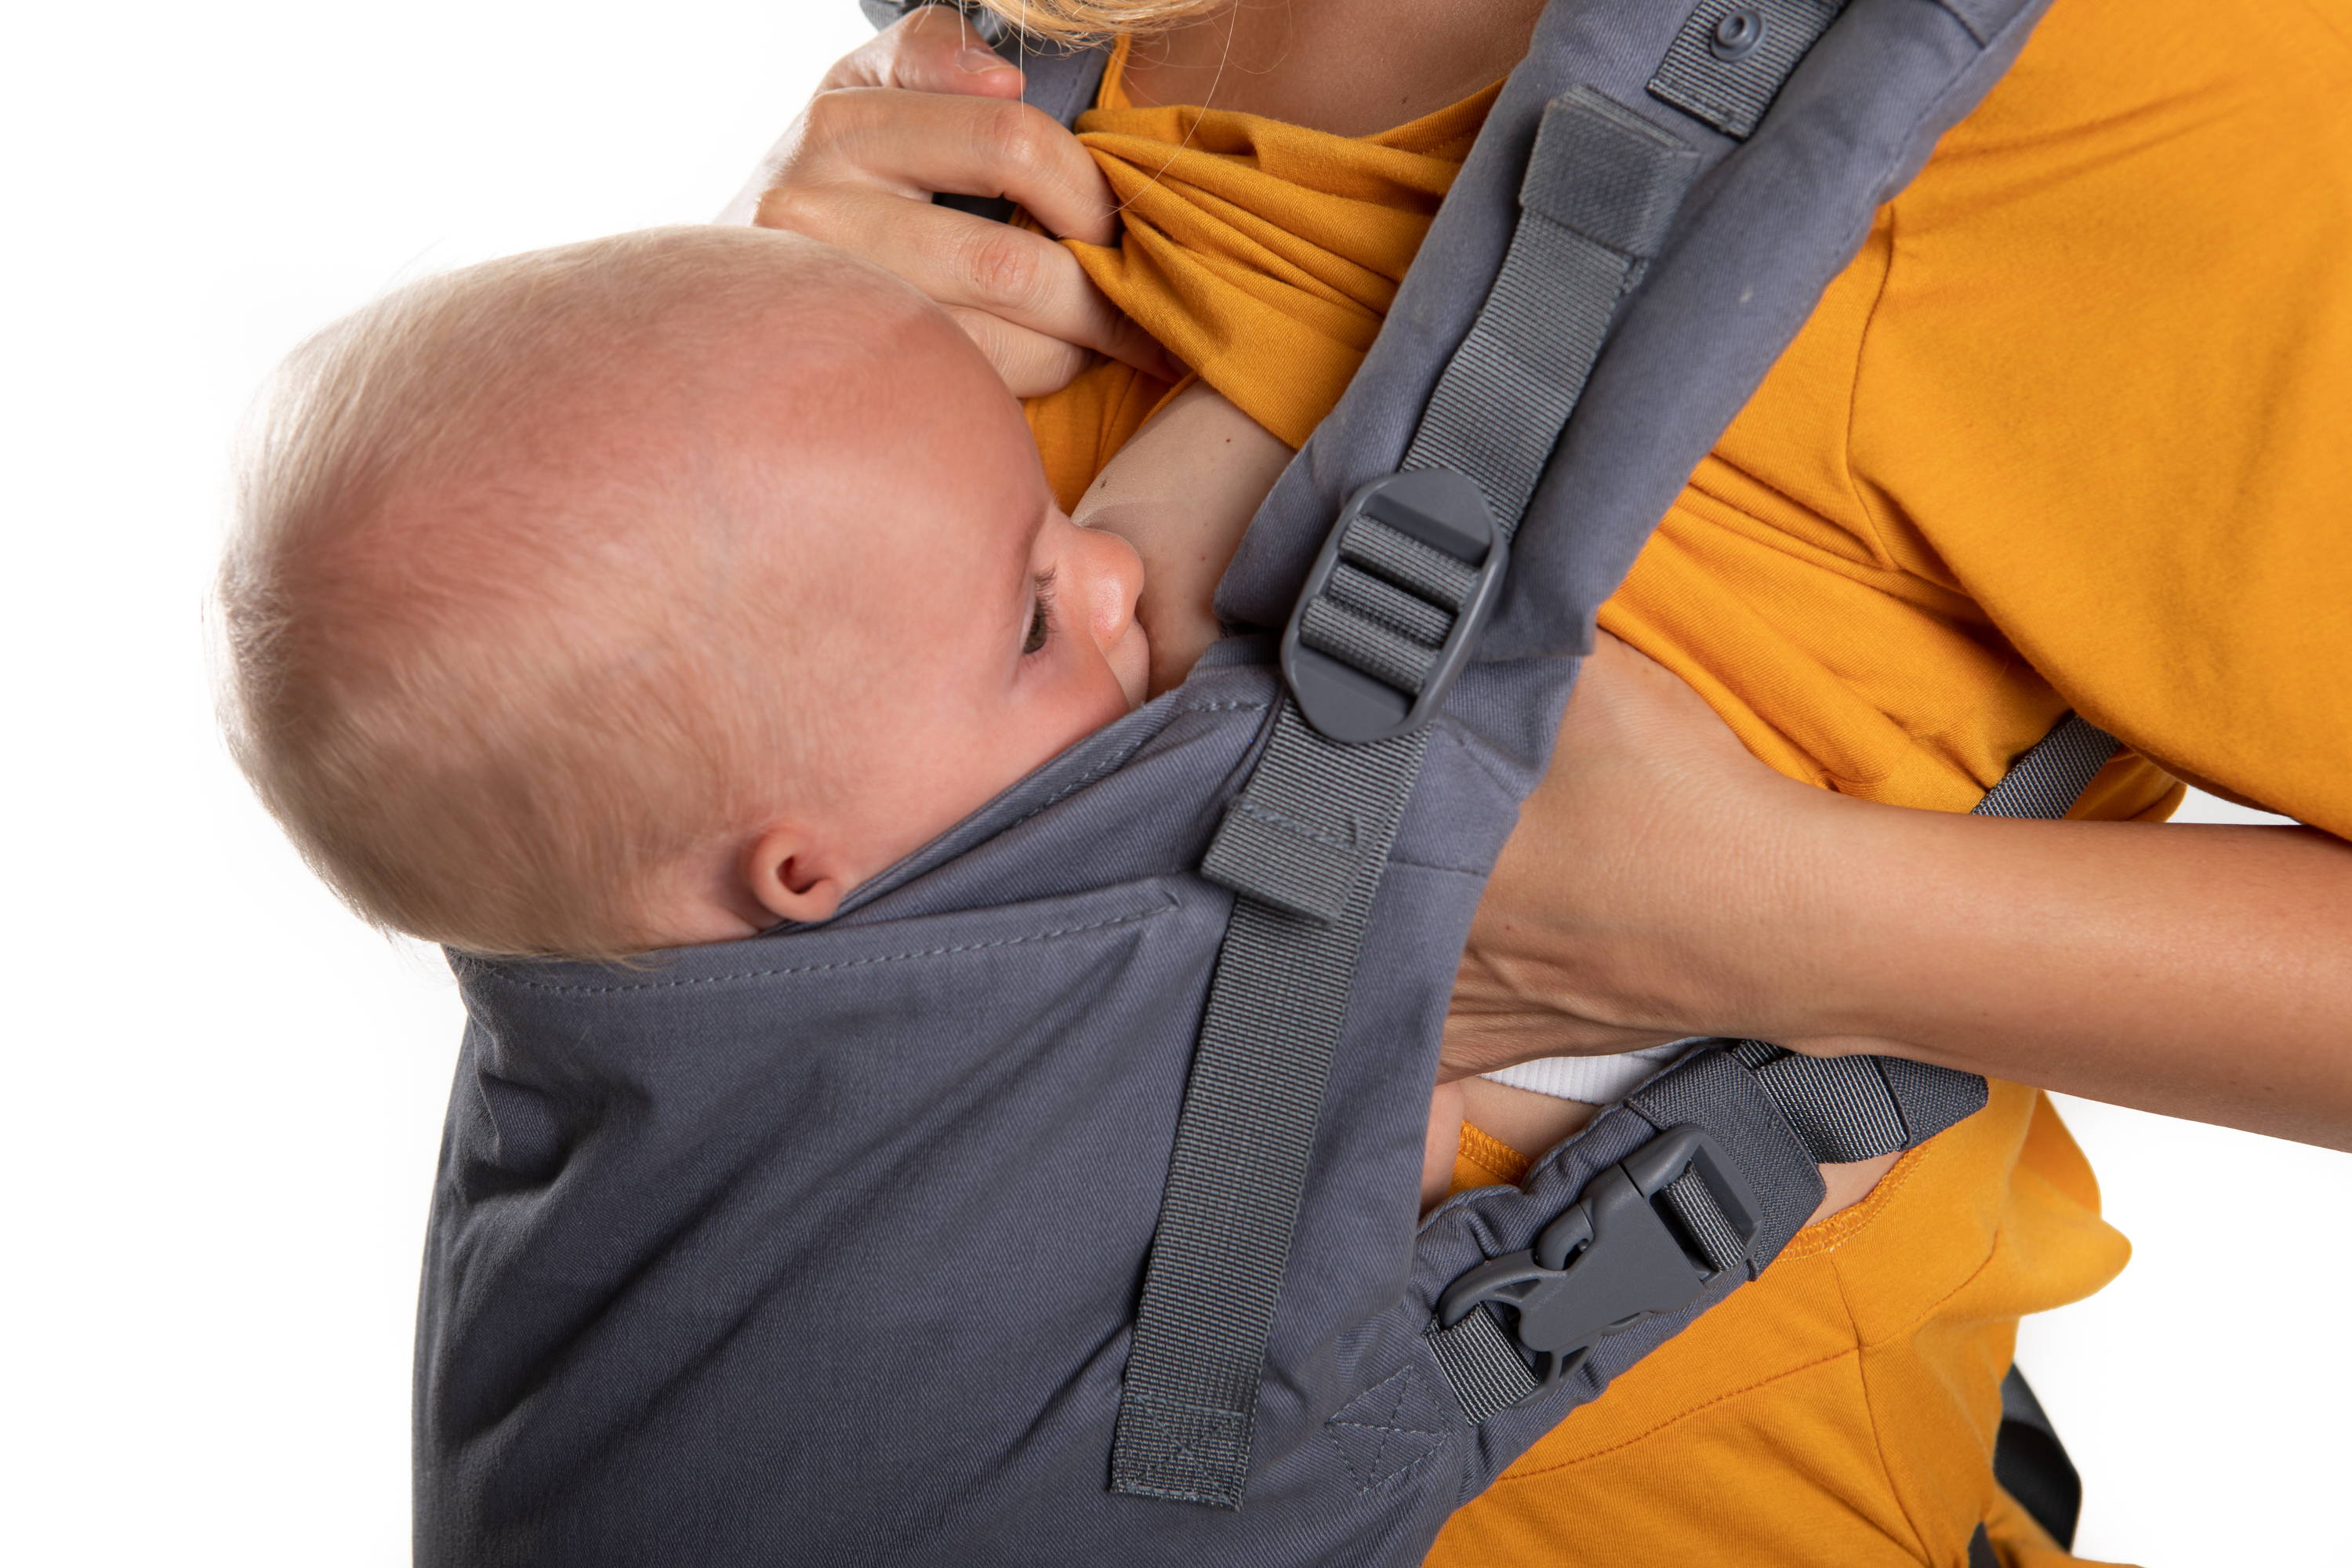 baby breastfeeding in Boba X carrier with mom wearing a mustard colored breastfeeding shirt